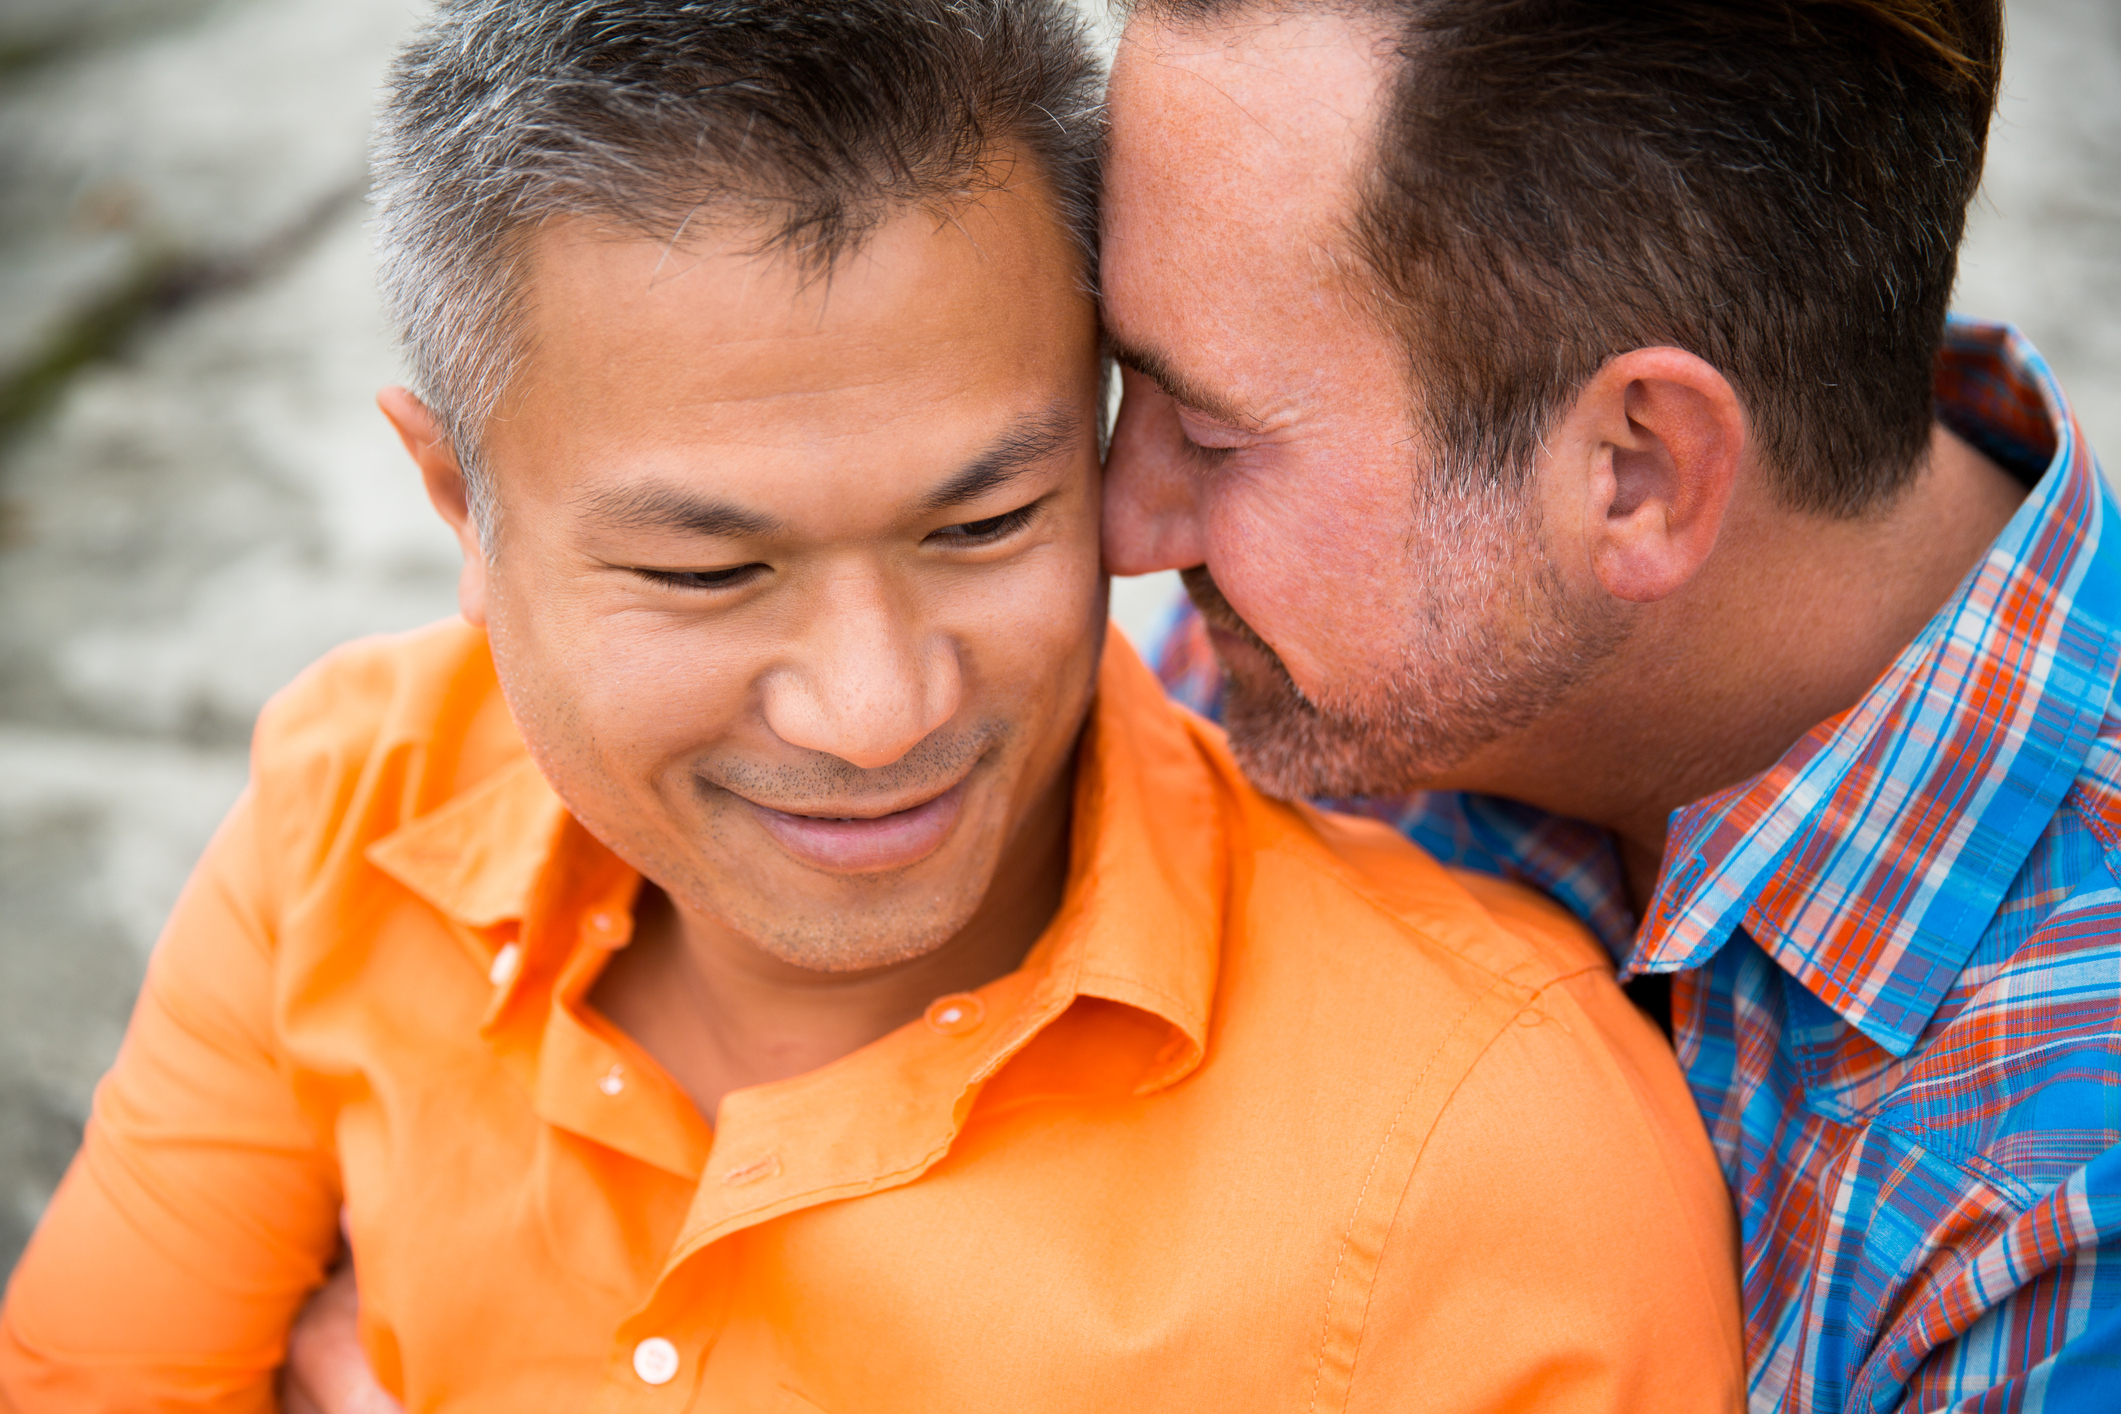 Reconnect... - deepen intimacy & communication while building a strong and lasting partnership together with love & empathy with the support of North Berkeley Couples Therapy Center's highly trained relationship experts.